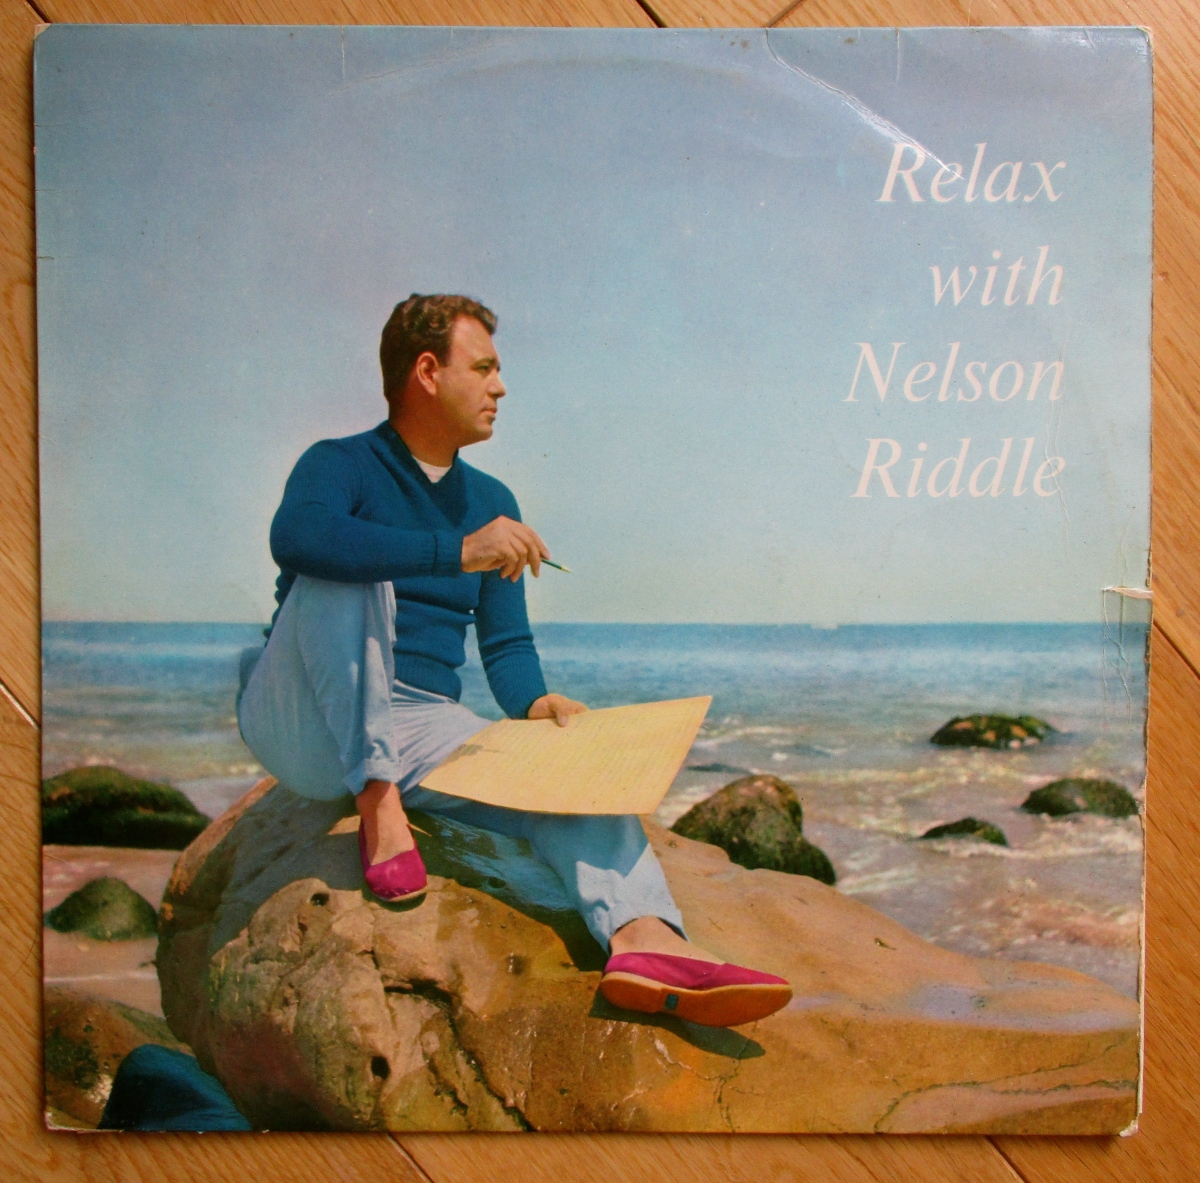 Vintage vinyl at the charity shop: Relax With Nelson Riddle